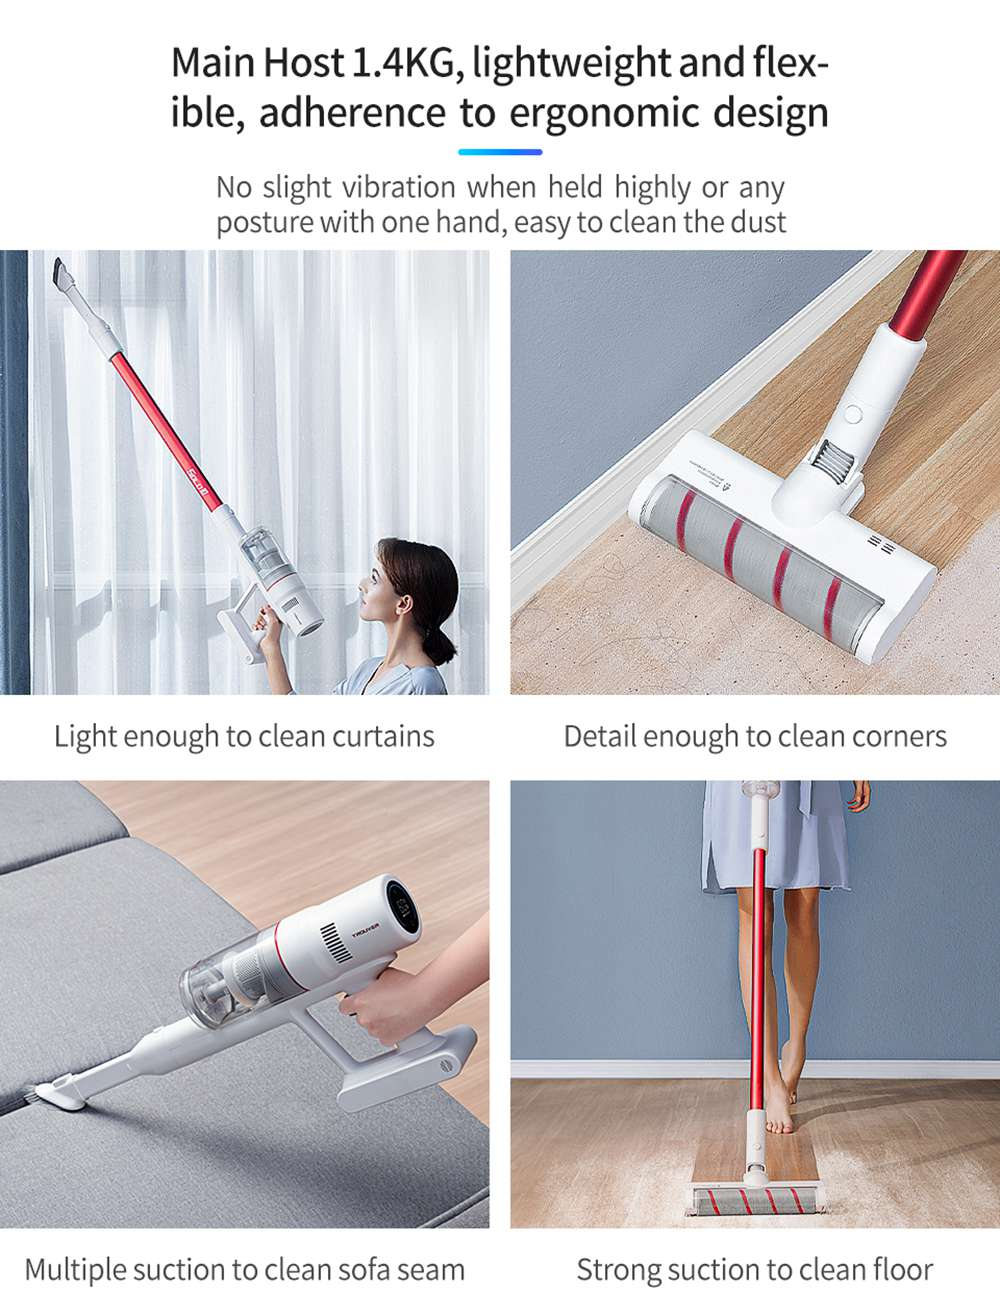 TROUVER SOLO 10 Handheld Cordless Vacuum Cleaner 300W Motor 85AW 18000Pa Strong Suction 2000 mAh Battery 48 Minutes Running Time LCD Display Removable Dust Cup - White